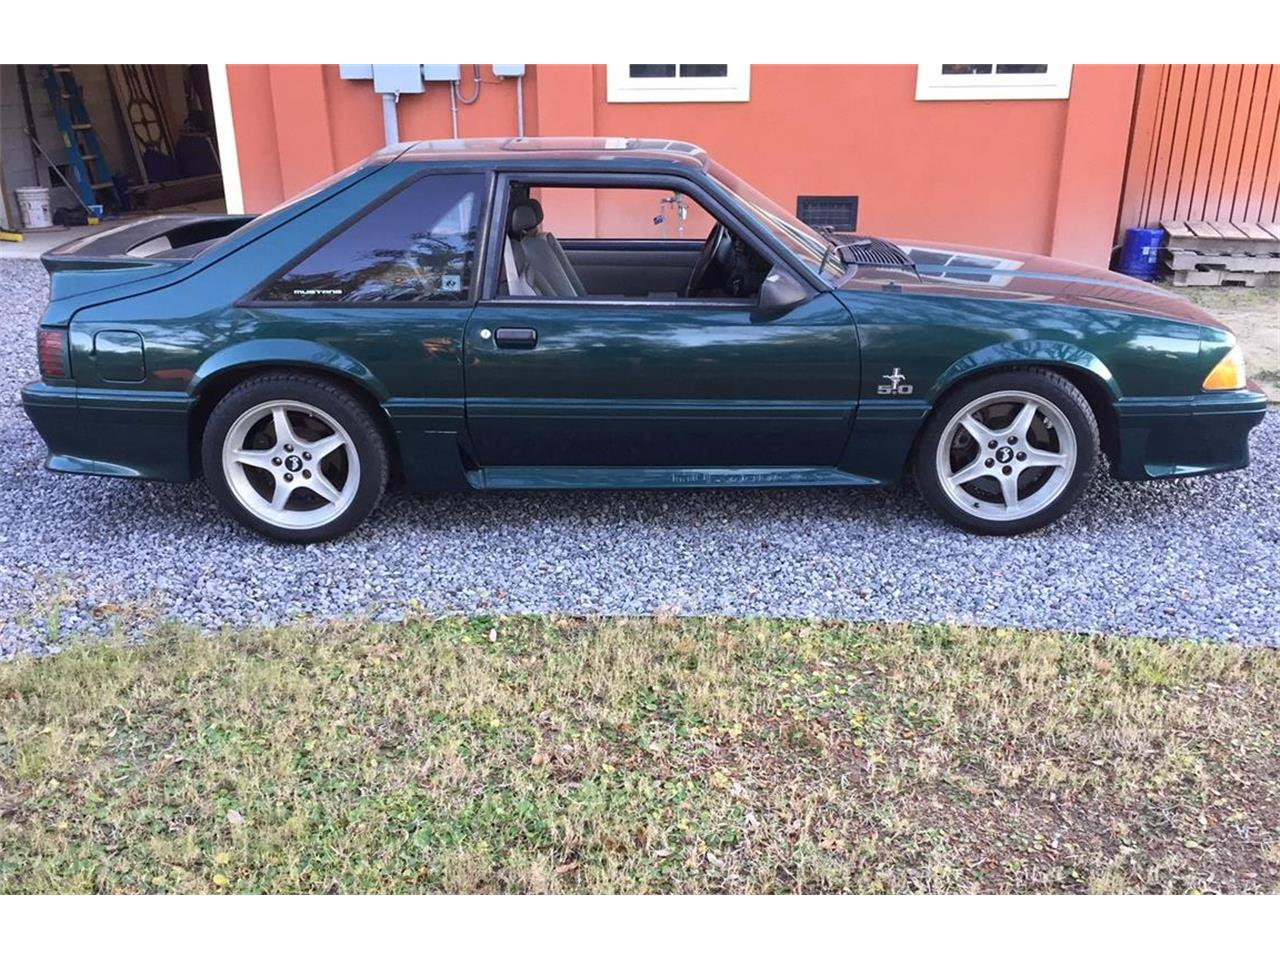 91 Mustang Gt >> For Sale 1991 Ford Mustang Gt In Charleston South Carolina